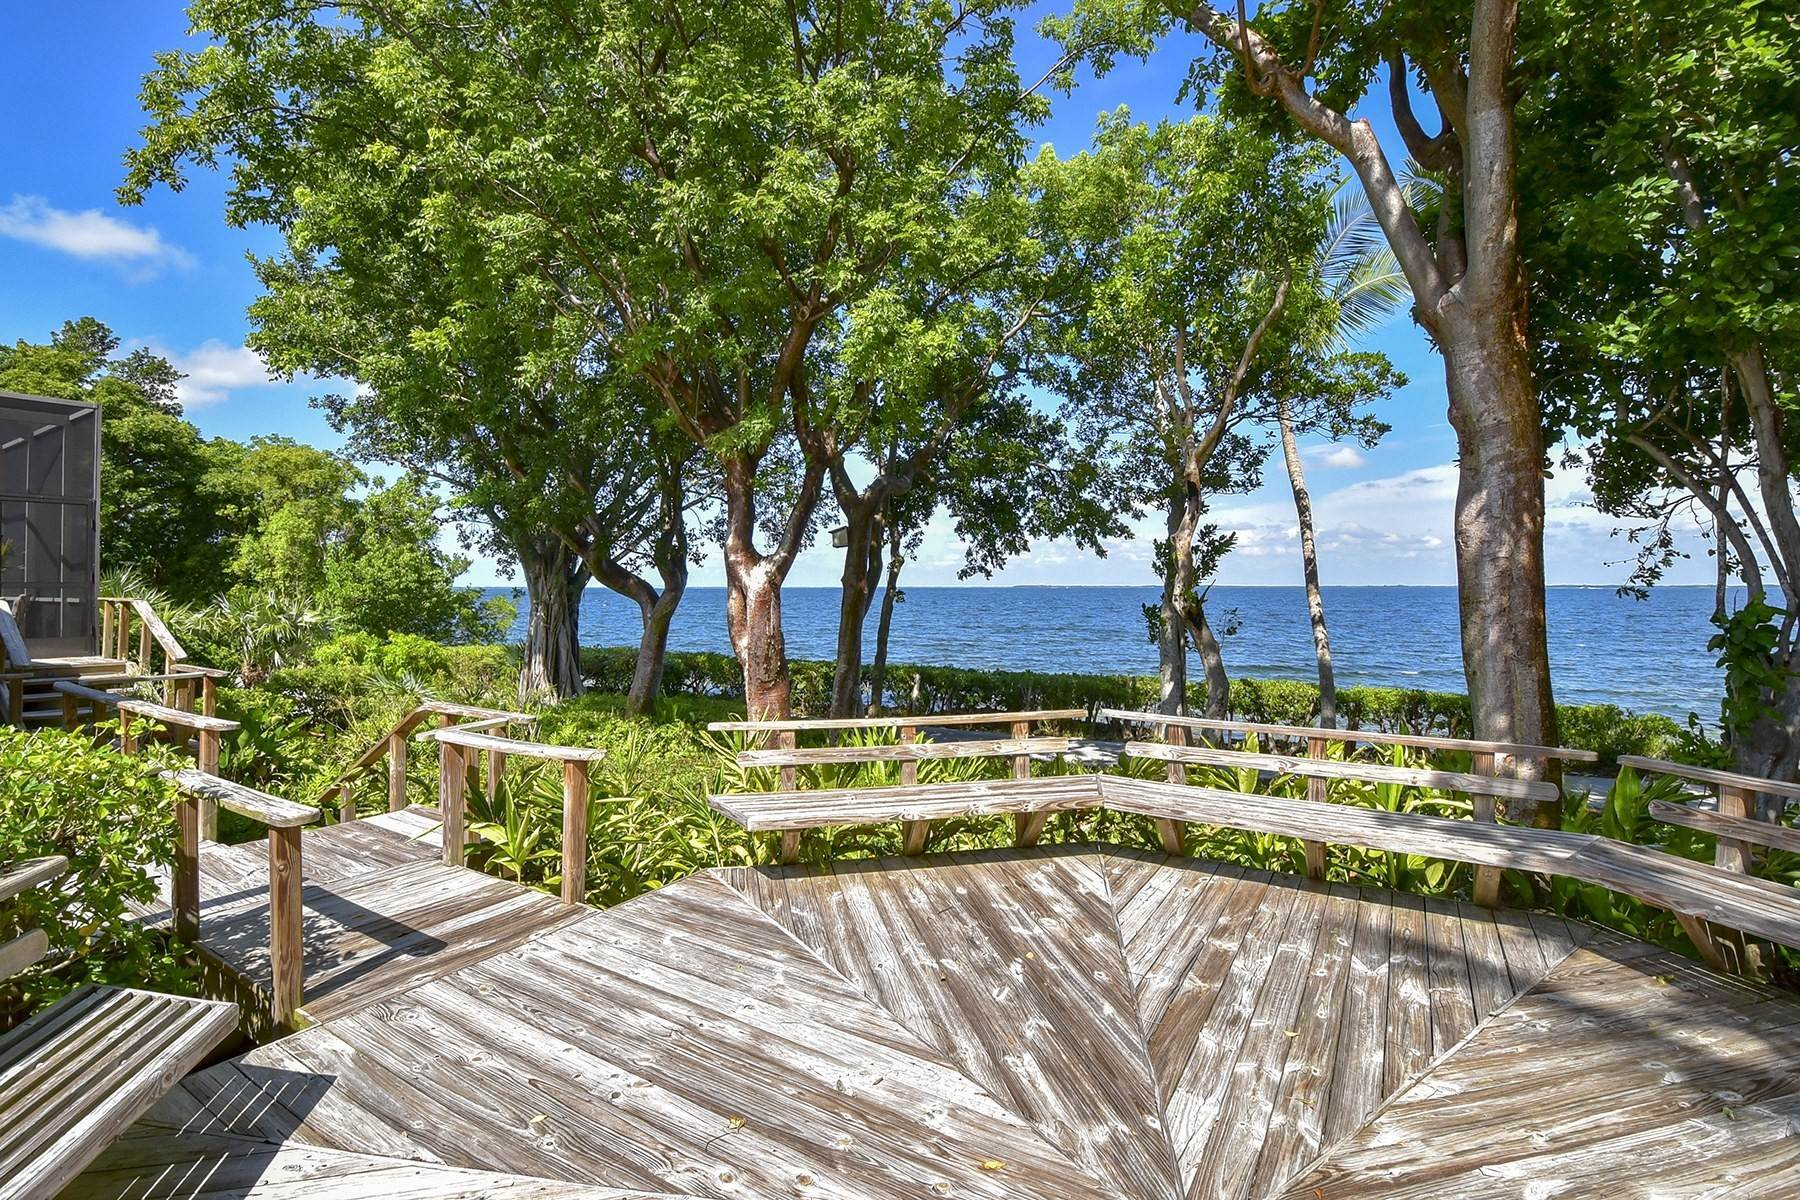 41. Property for Sale at 10 Cannon Point, Key Largo, FL 10 Cannon Point Key Largo, Florida 33037 United States